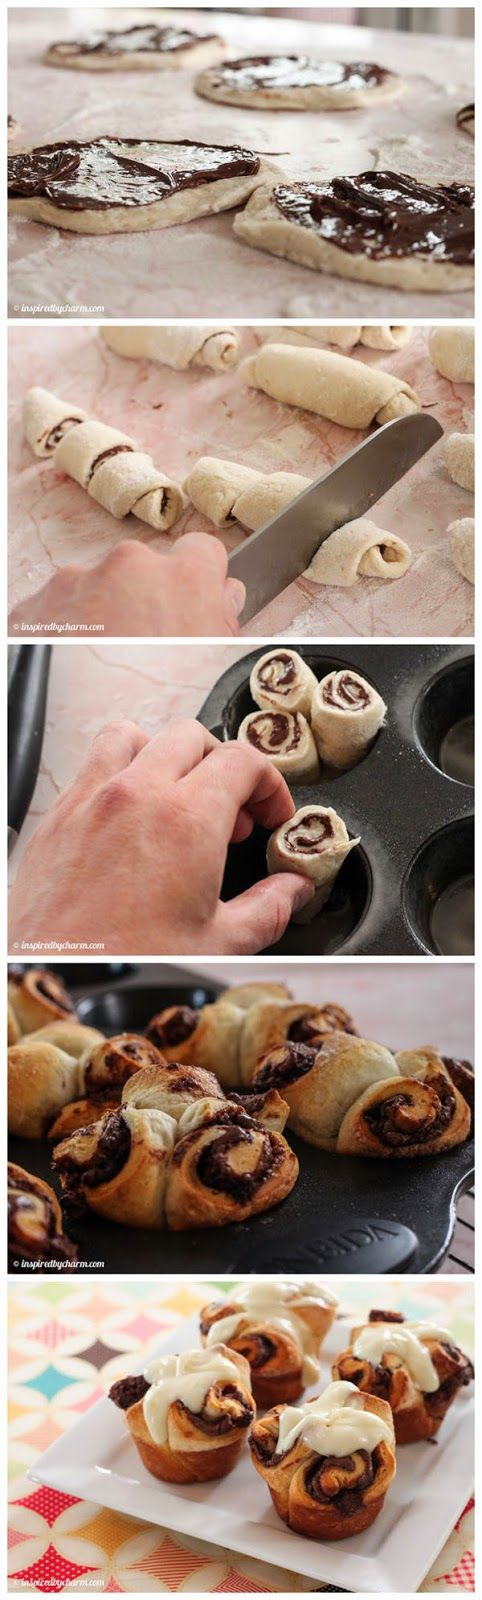 Nutella Rolls with Cream Cheese Icing | Yummy Food Market